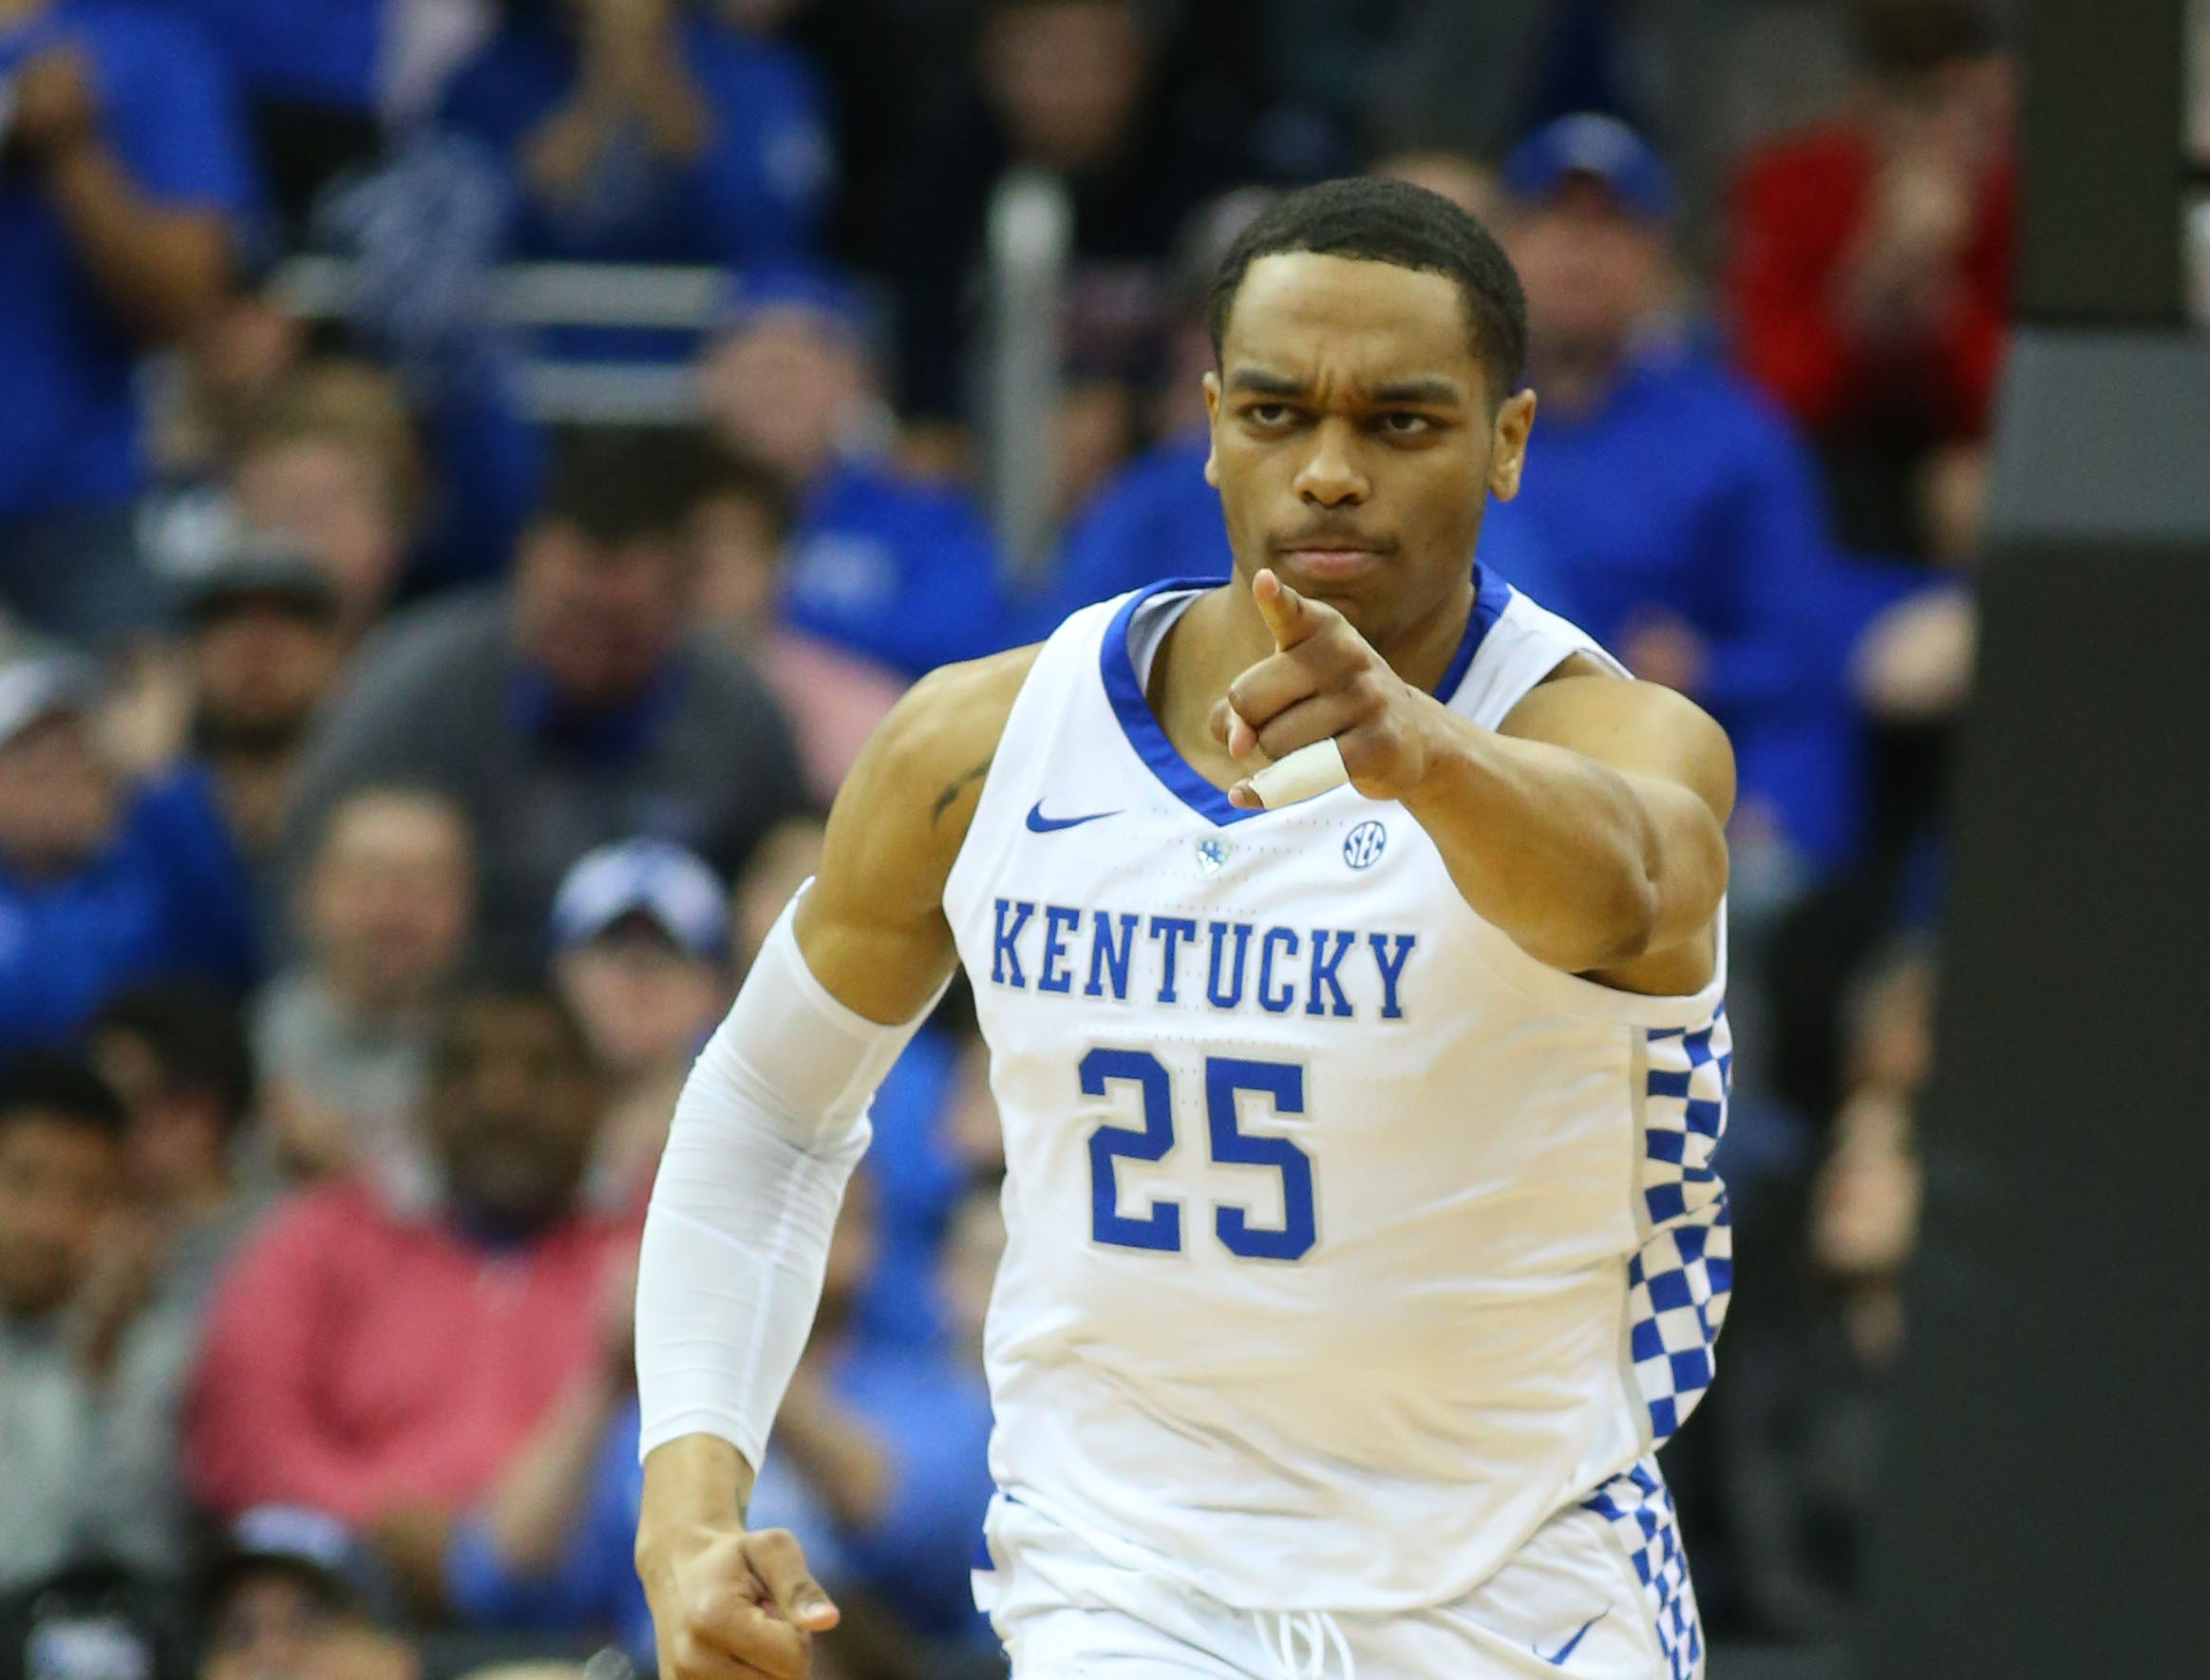 Mar 31, 2019; Kansas City, MO, United States; Kentucky Wildcats forward PJ Washington (25) after dunking the ball against the Auburn Tigers during the first half in the championship game of the midwest regional of the 2019 NCAA Tournament at Sprint Center. Mandatory Credit: Jay Biggerstaff-USA TODAY Sports